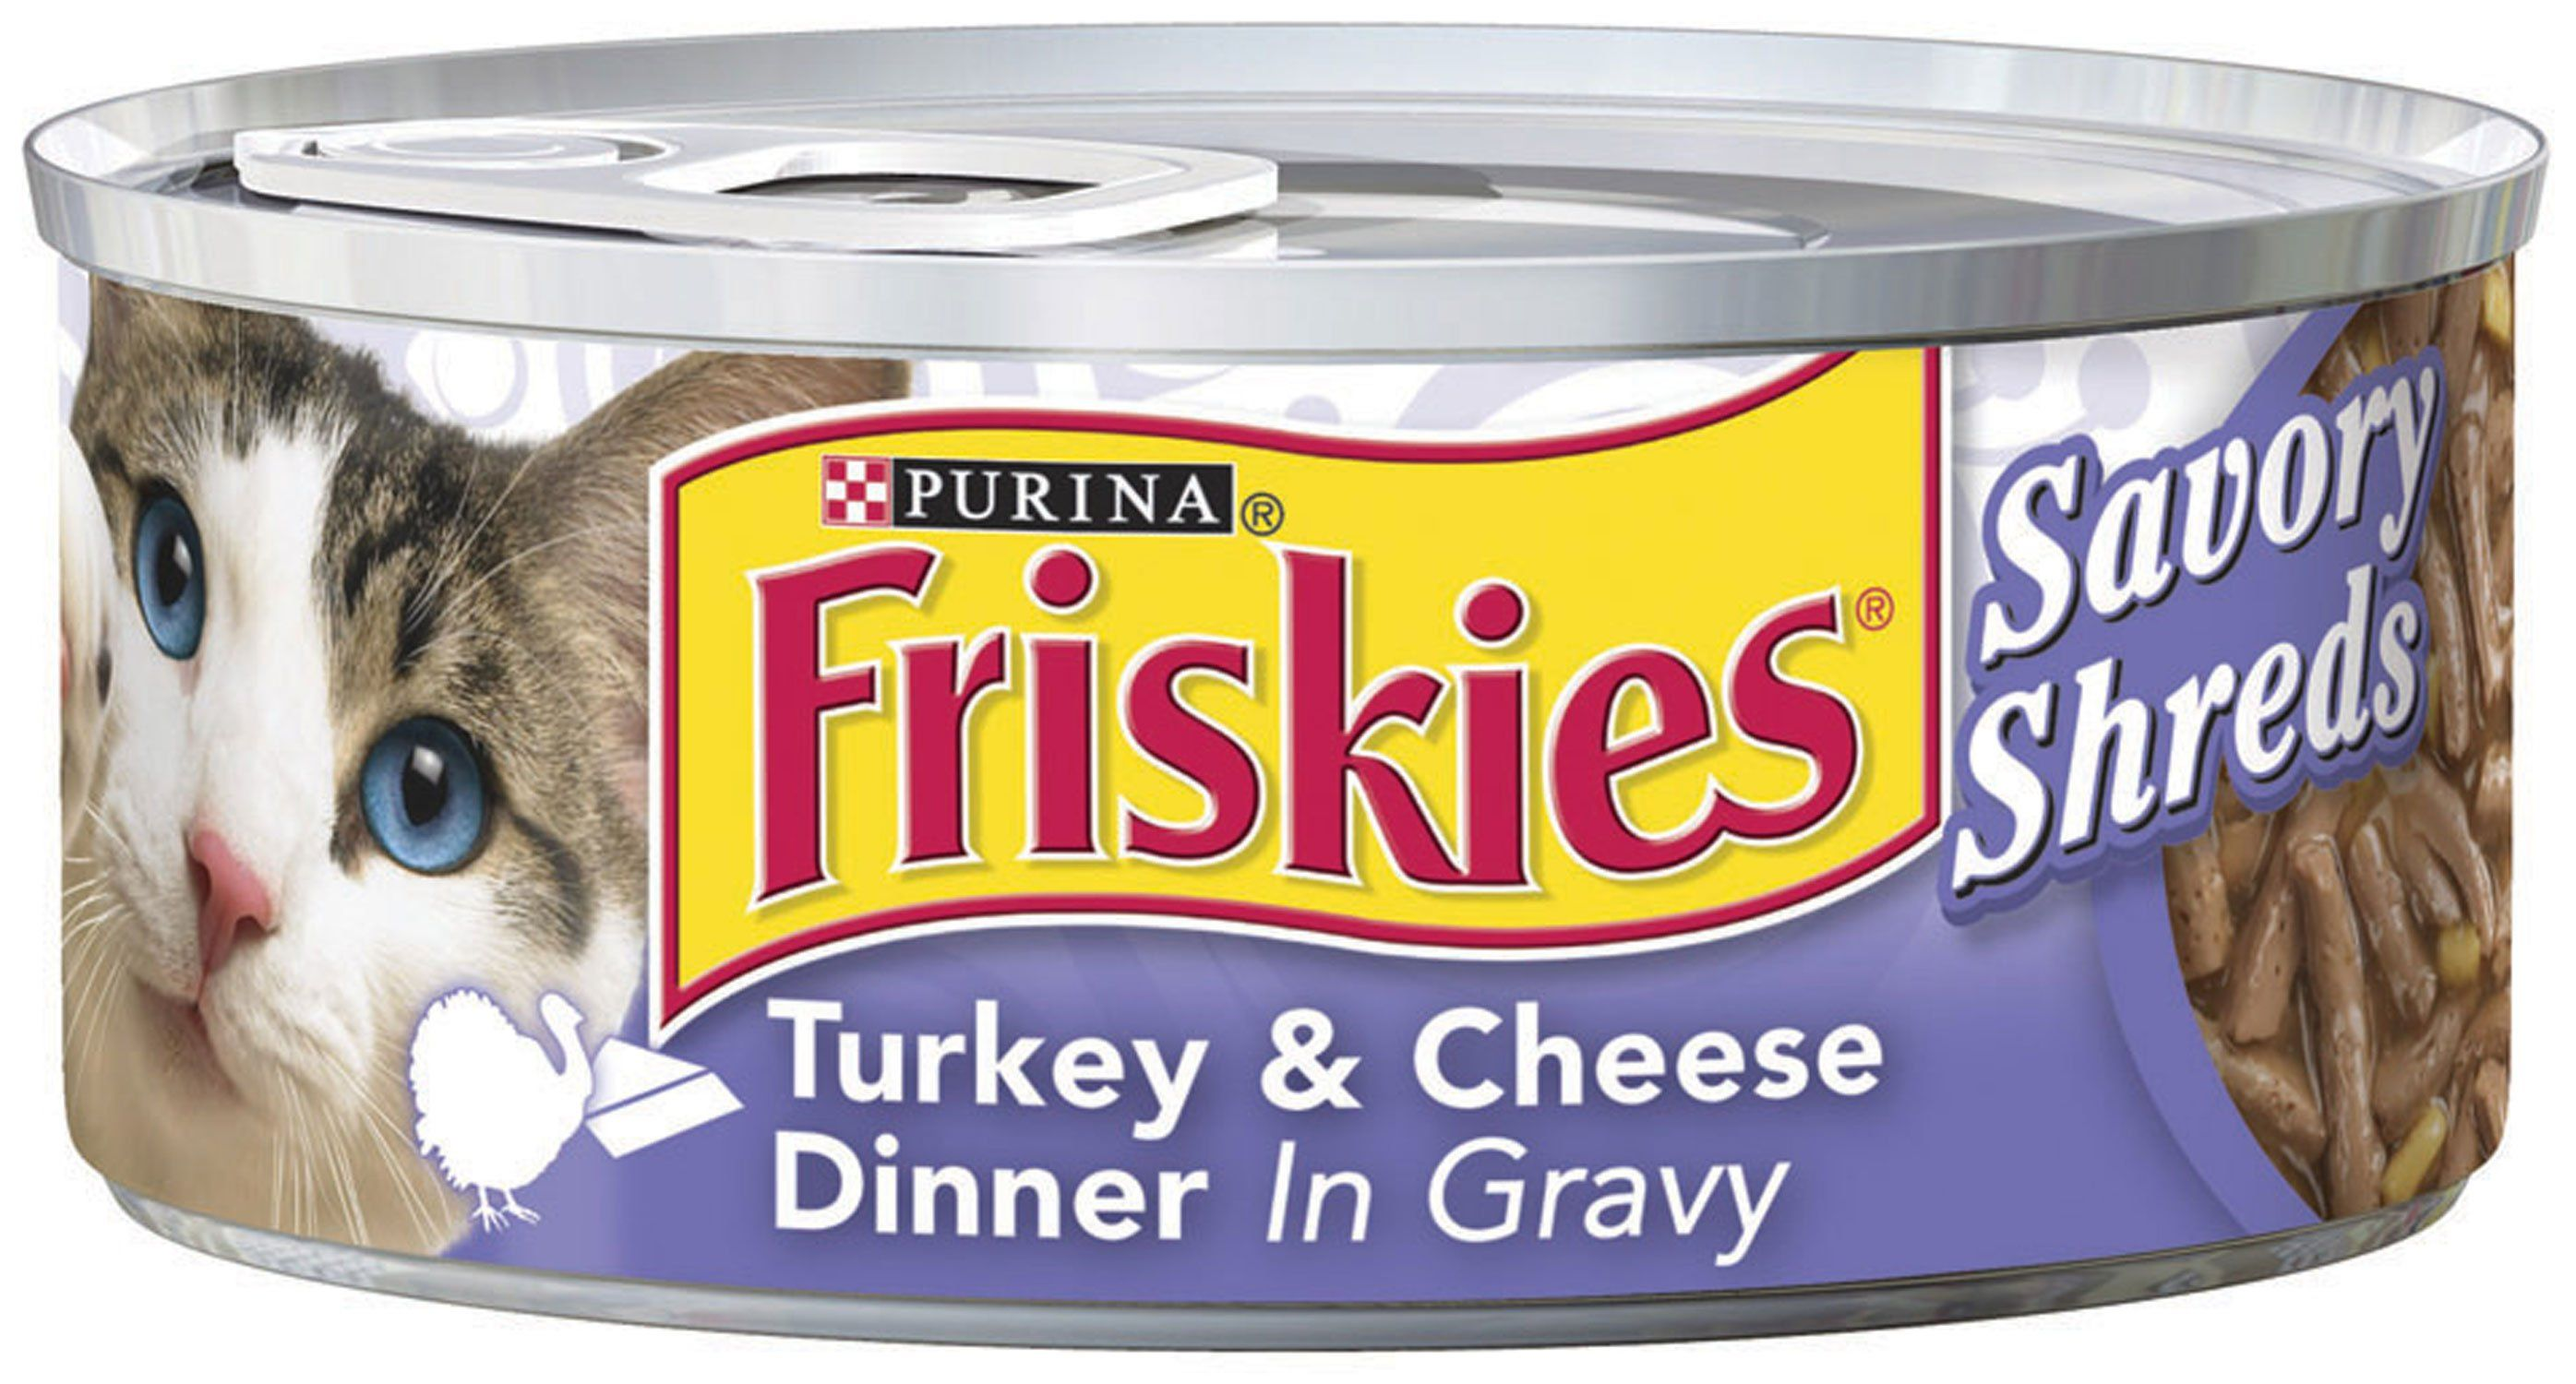 Friskies Savory Shreds Turkey And Cheese Dinner In Gravy